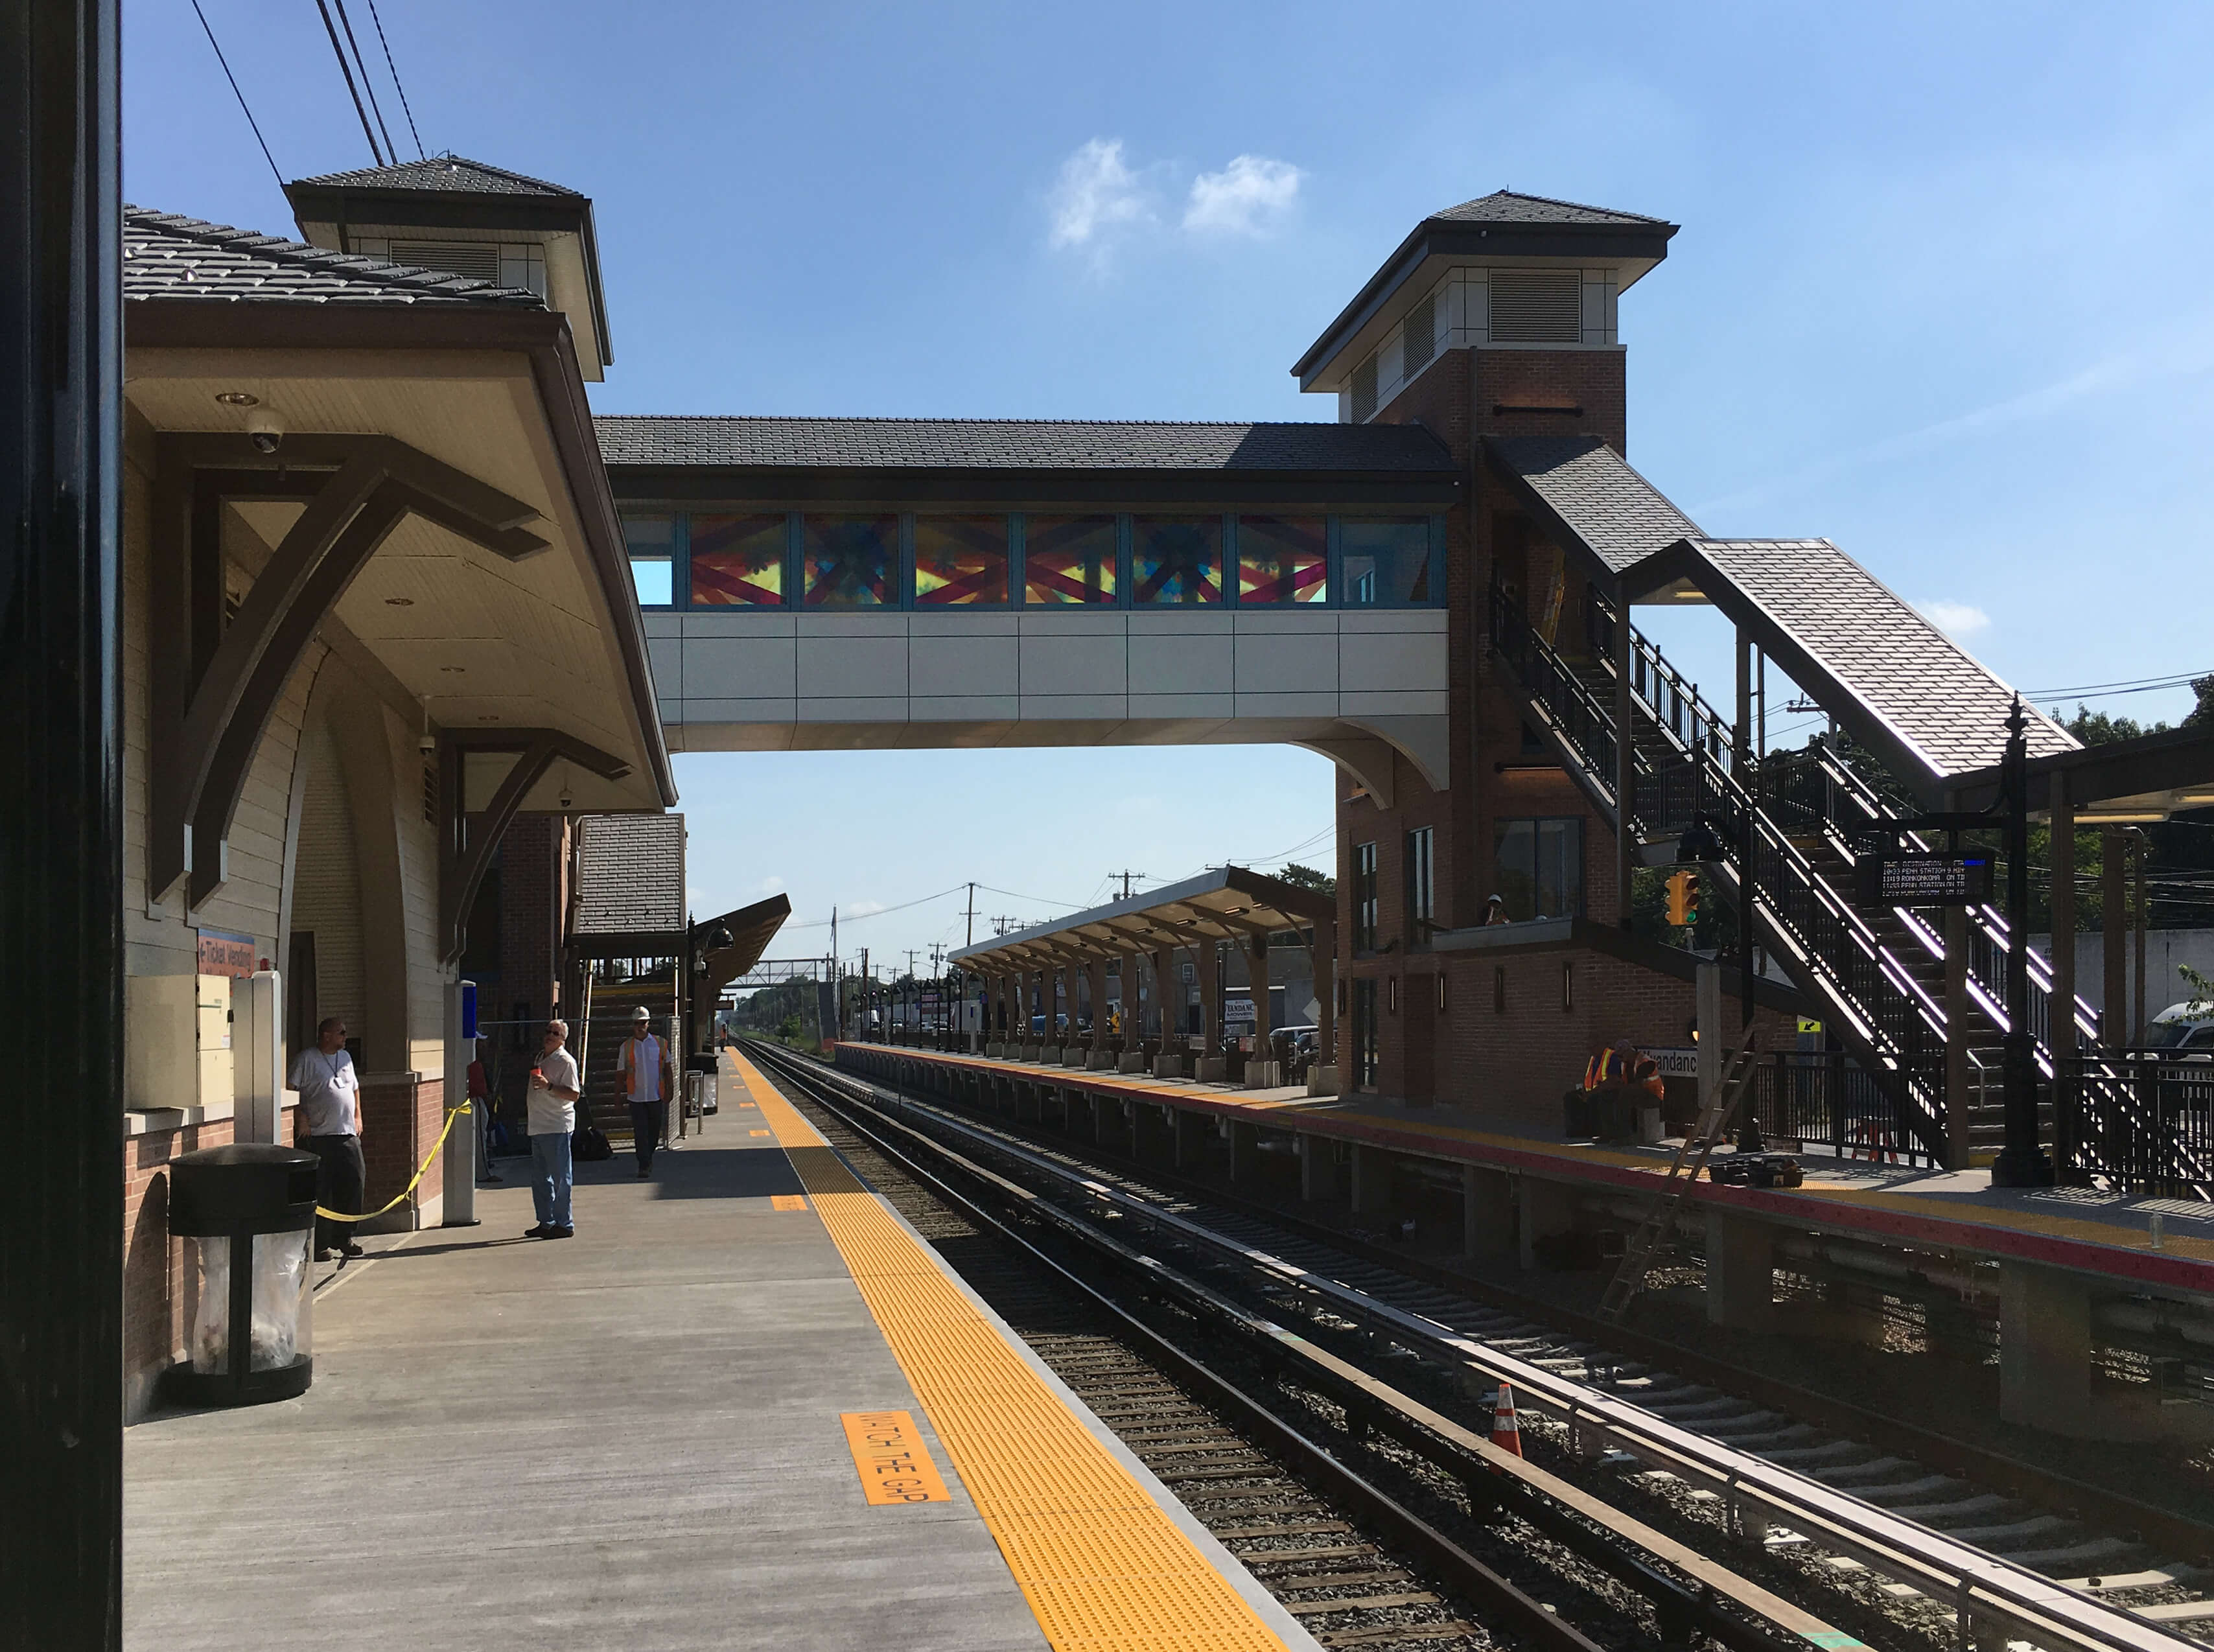 Wyandanch Station, MTA Arts & Design and Long Island Rail Road, NY